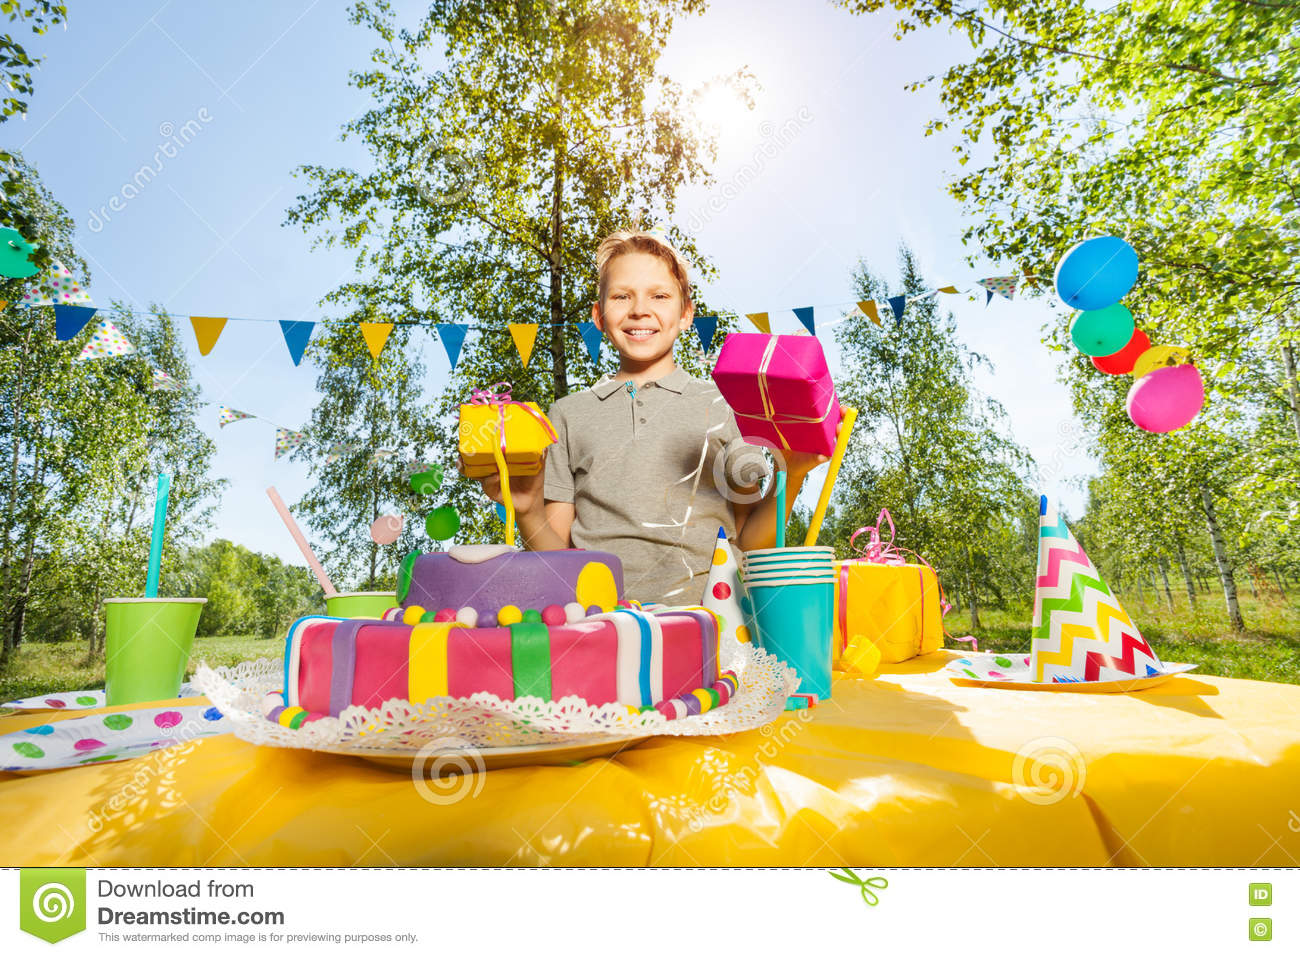 Portrait Of Happy Smiling Boy Holding Birthday Gifts Standing Next To The Cake At Outdoor Party